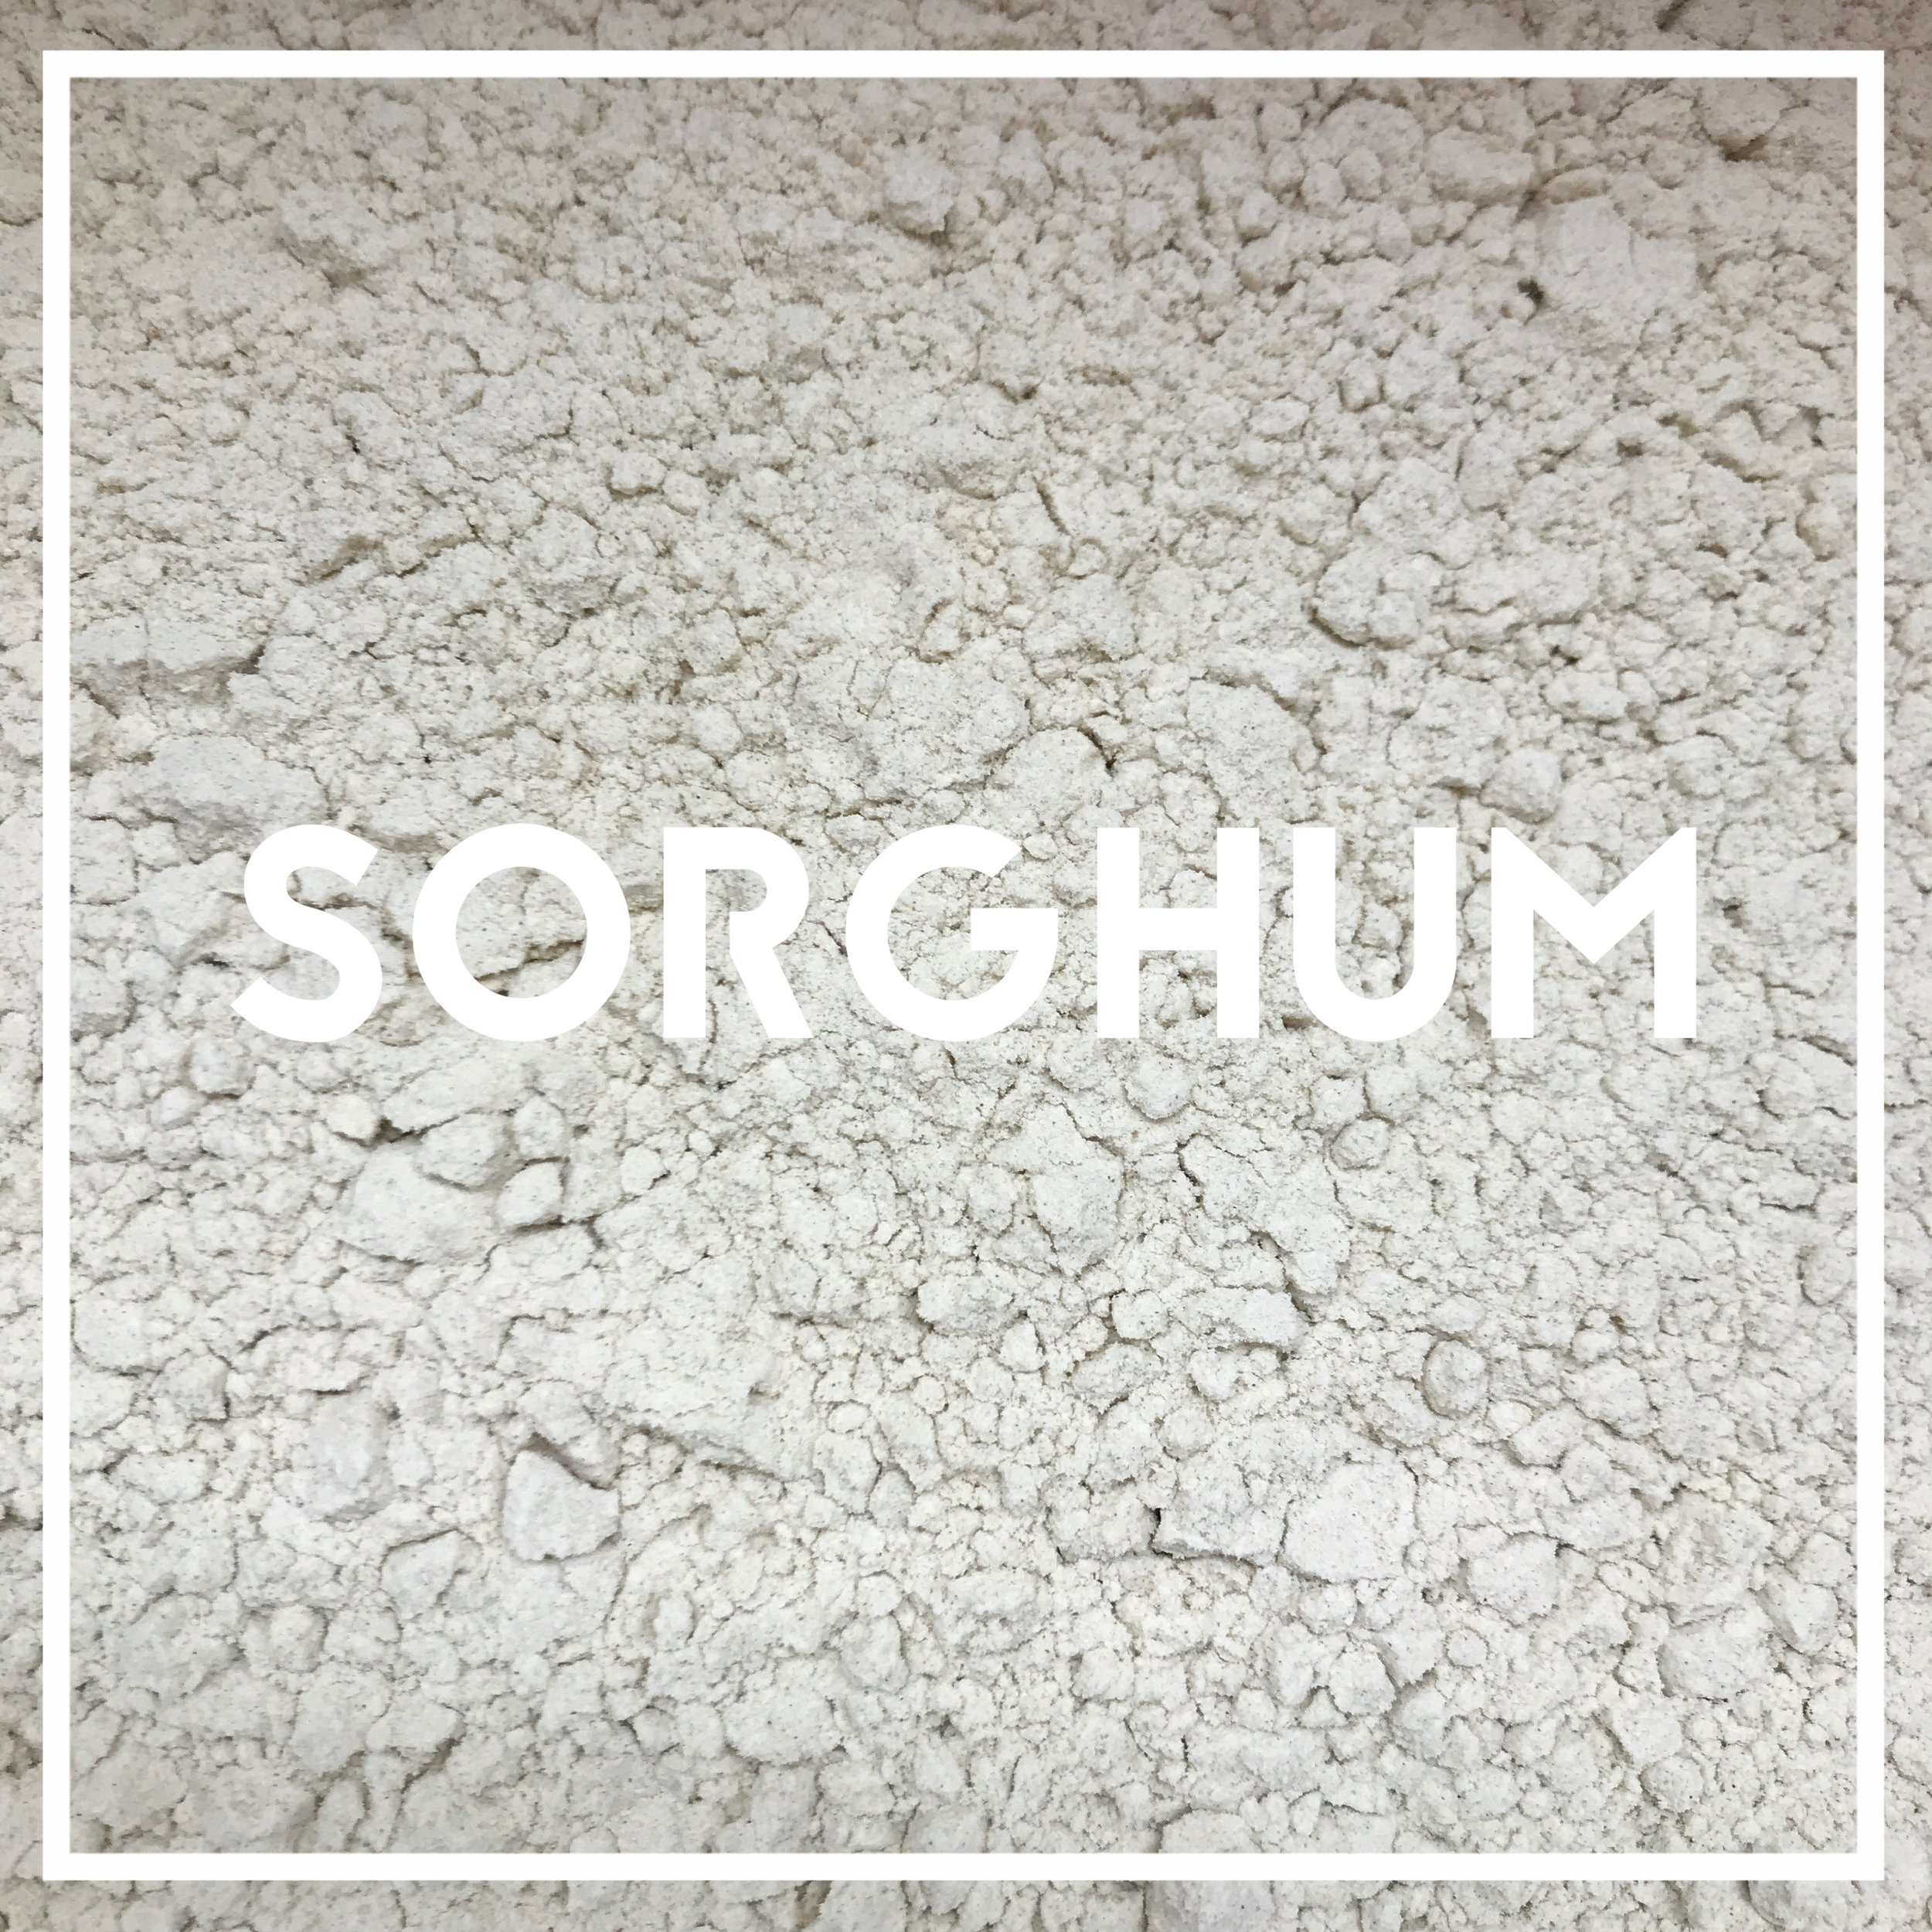 Our Sorghum is grown by family farmers within about 70 miles of Effingham, IL, where they are stone milled at  Hodgson Mill .   Used in: 1776   Sorghum (also called Shattercane, broomcorn, and Sudan grass) is an ancient grain, cultivated in Northeastern Africa for more than 10,000 years. In the United States, Benjamin Franklin gave seeds to his friends, because it made excellent bread and unparalleled thatching. We use it for its mild, silky sweetness.